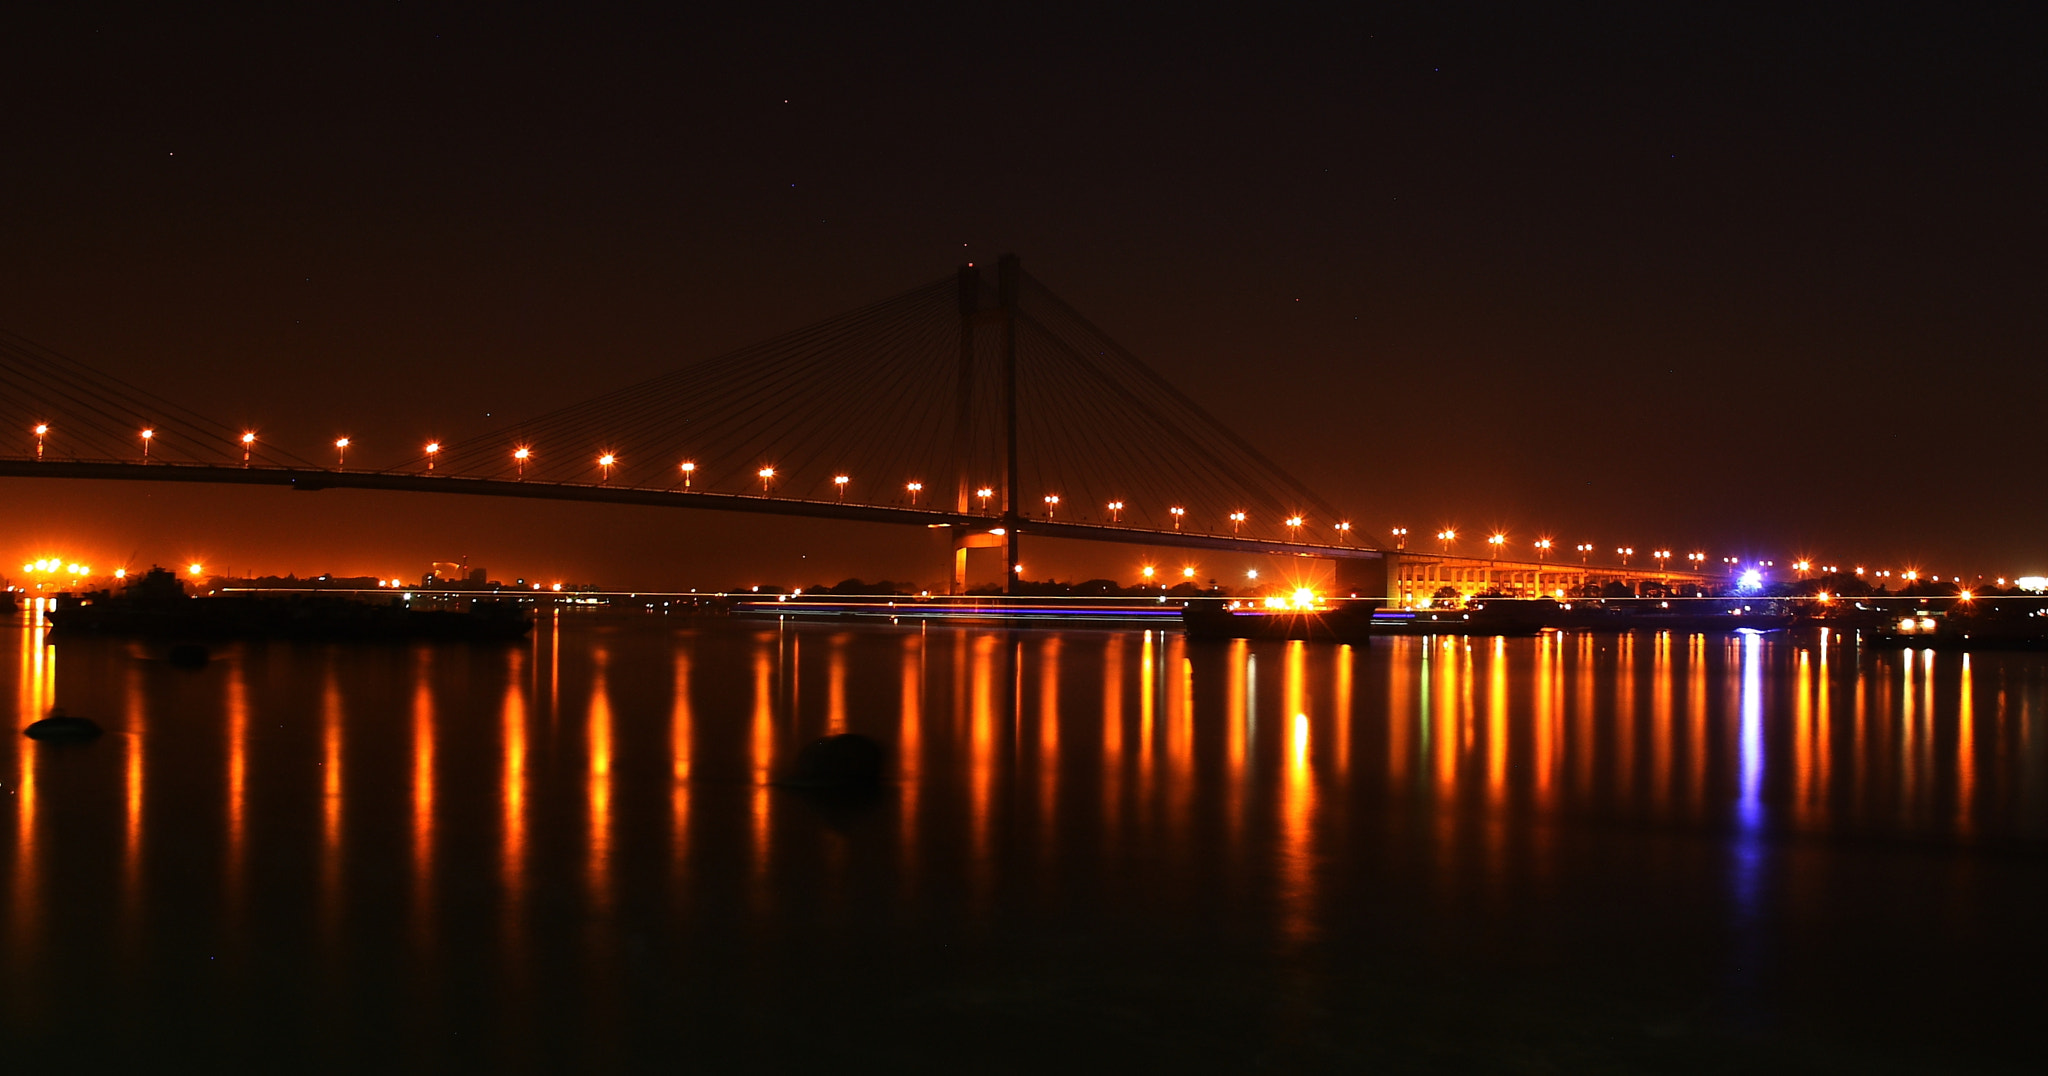 Photograph Vidyasagar Bridge by Pranab Ghosh on 500px